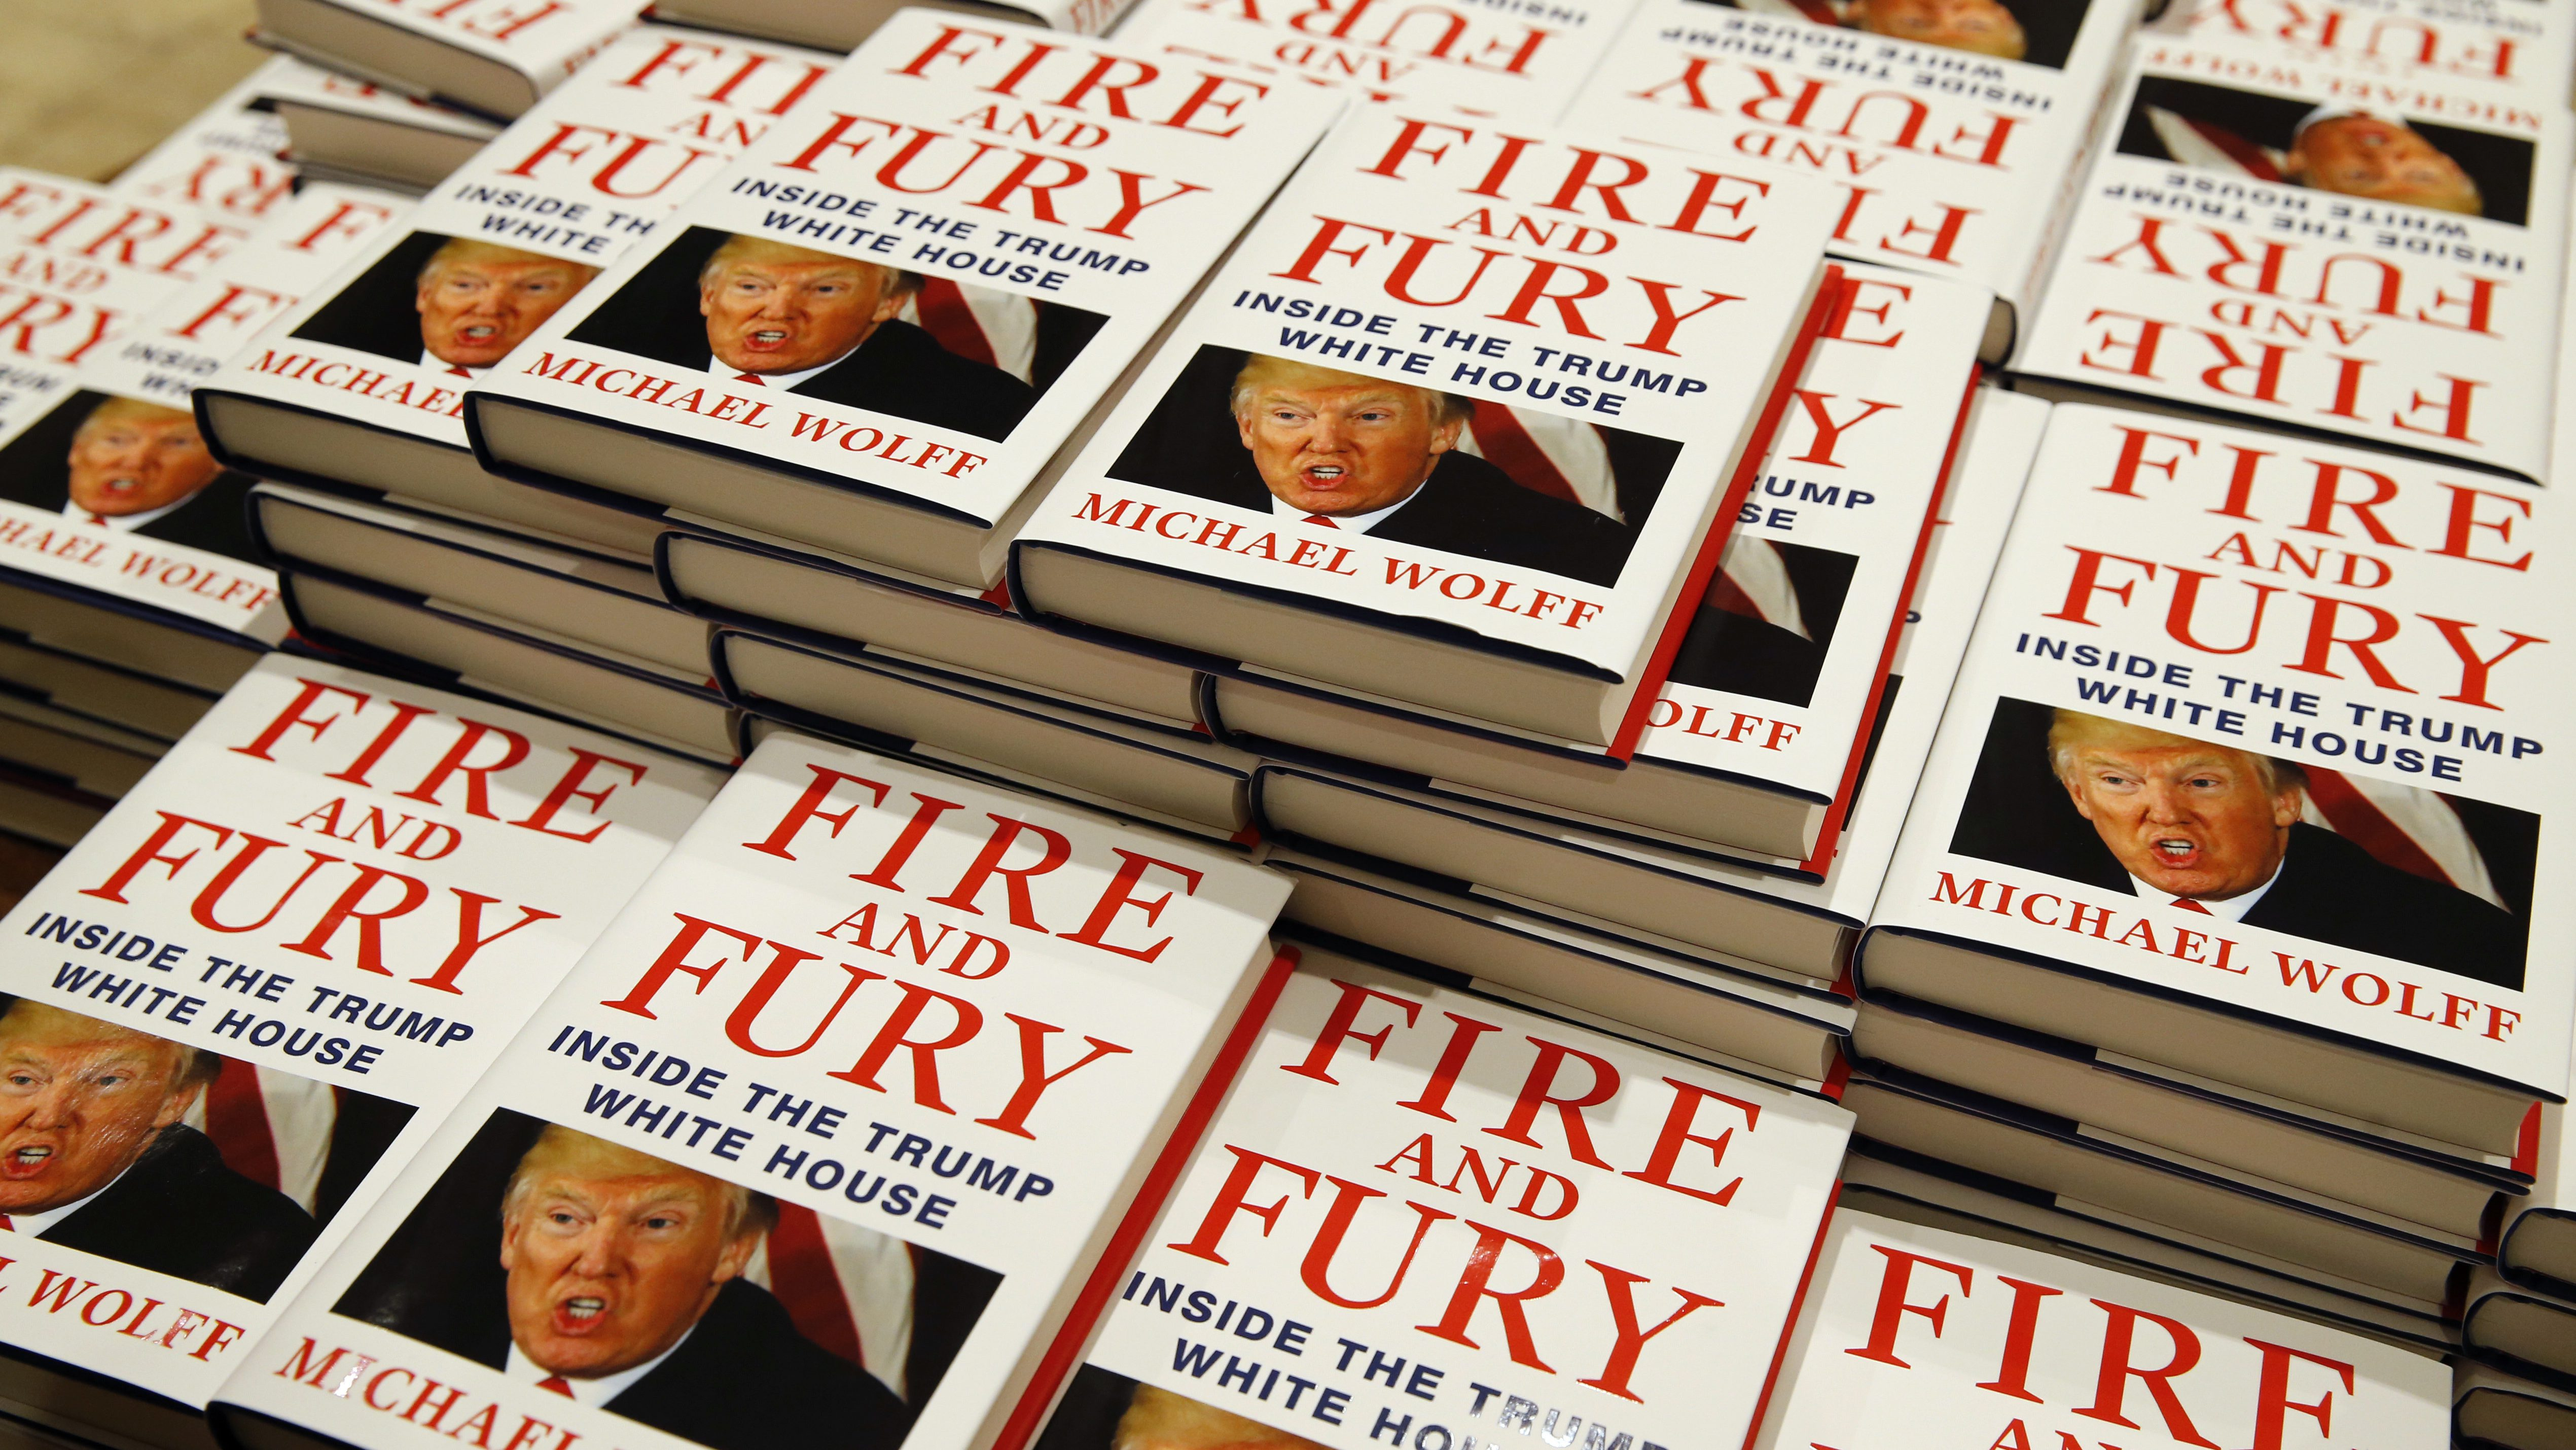 """Copies of Michael Wolff's """"Fire and Fury: Inside the Trump White House"""" on display as they go on sale at a bookshop, in London, Tuesday, Jan. 9, 2018. A trade magazine is reporting that over 1 million orders for the book have been placed in the United States alone. (AP Photo/Alastair Grant)"""